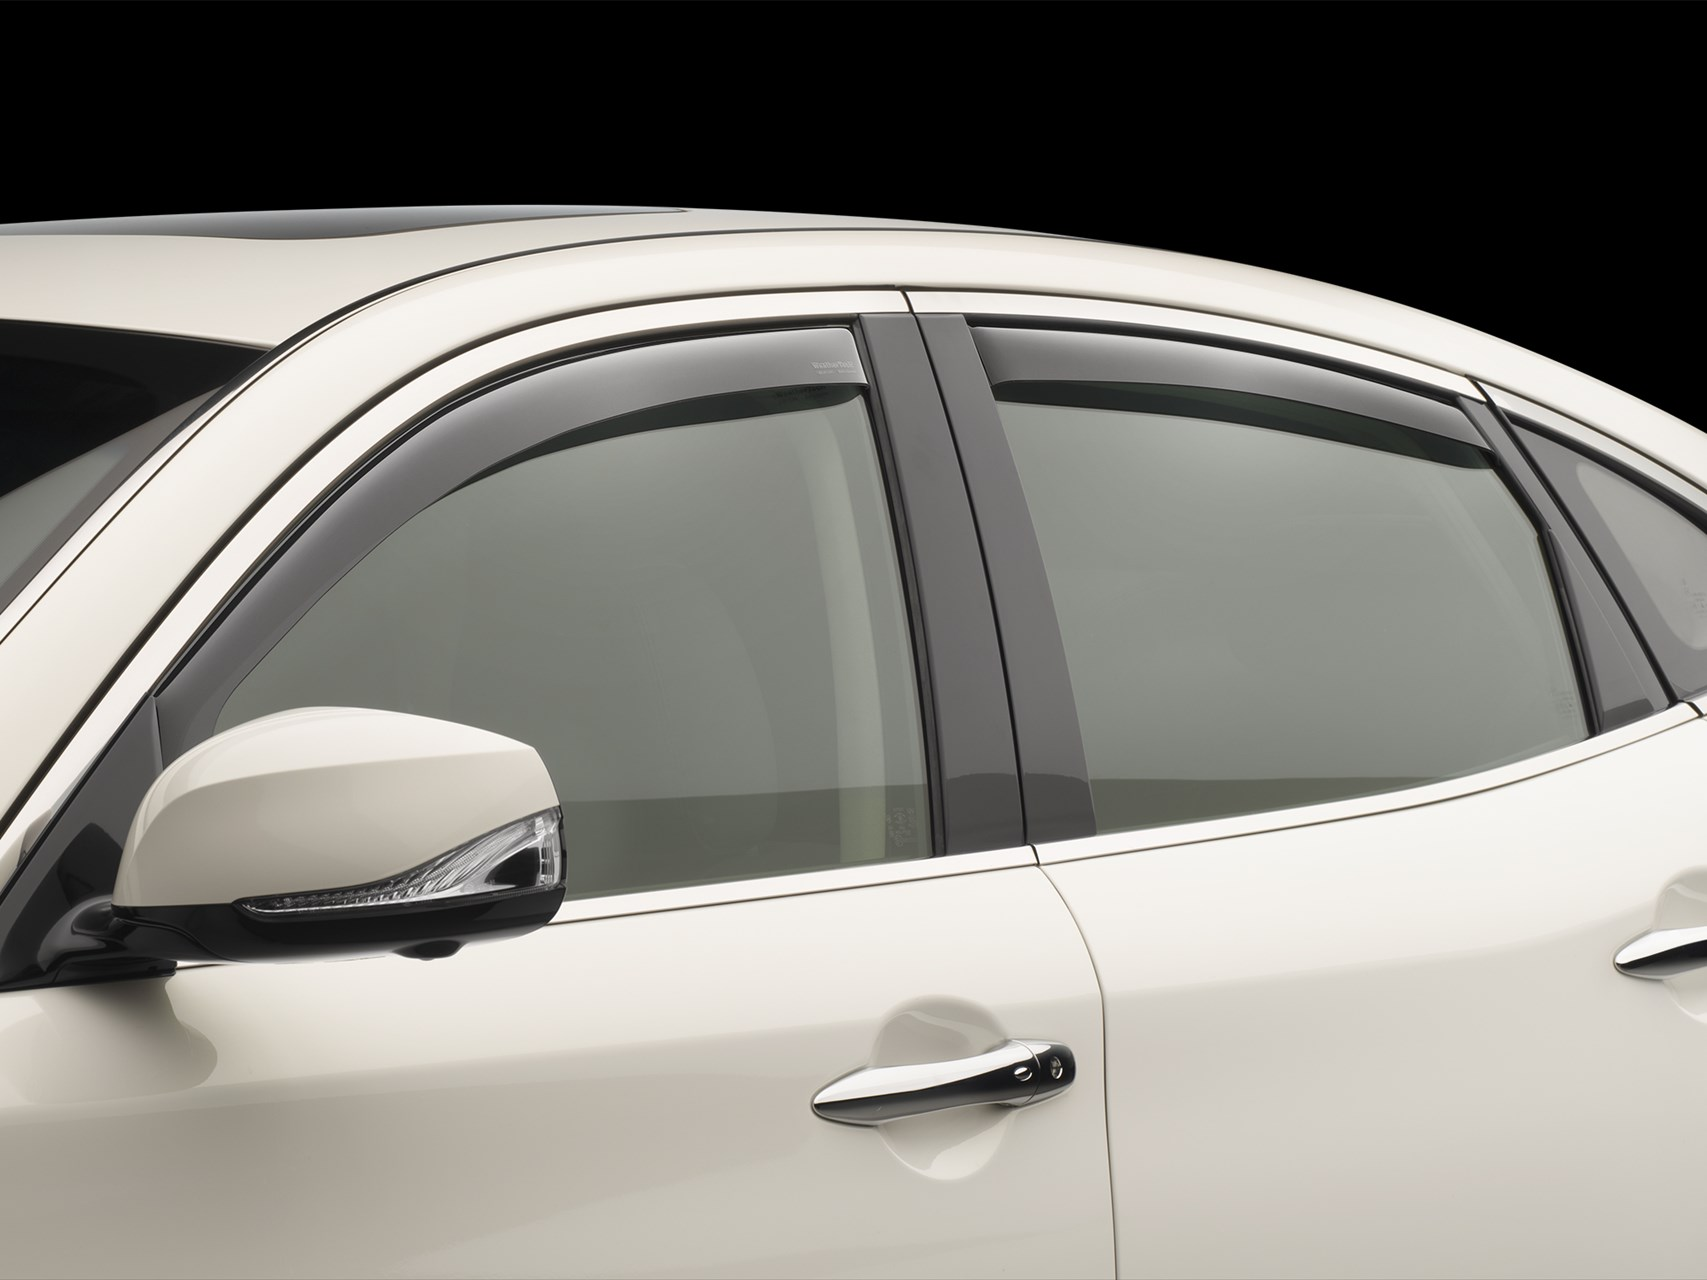 weathertech side window deflectors  rain guards